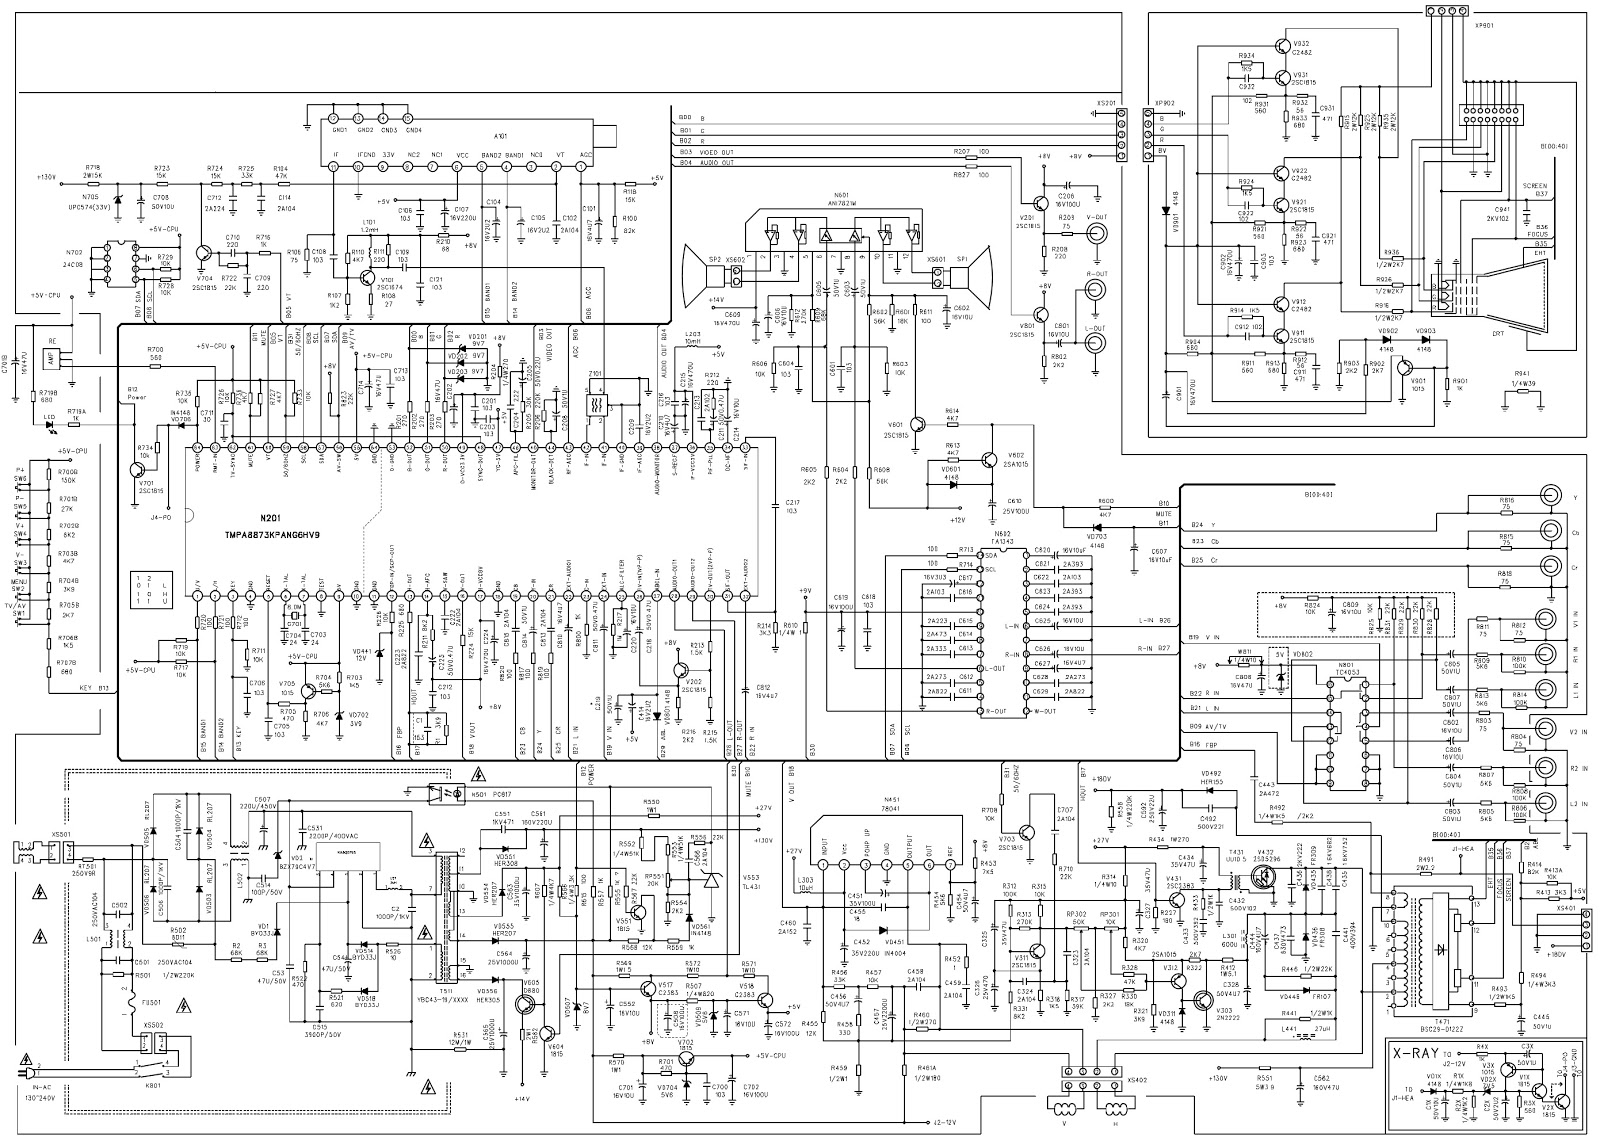 FIG 3 colour tv circuit diagram tmpa8873kpang6hv9 syscon chroma ic ic schematic diagram at couponss.co